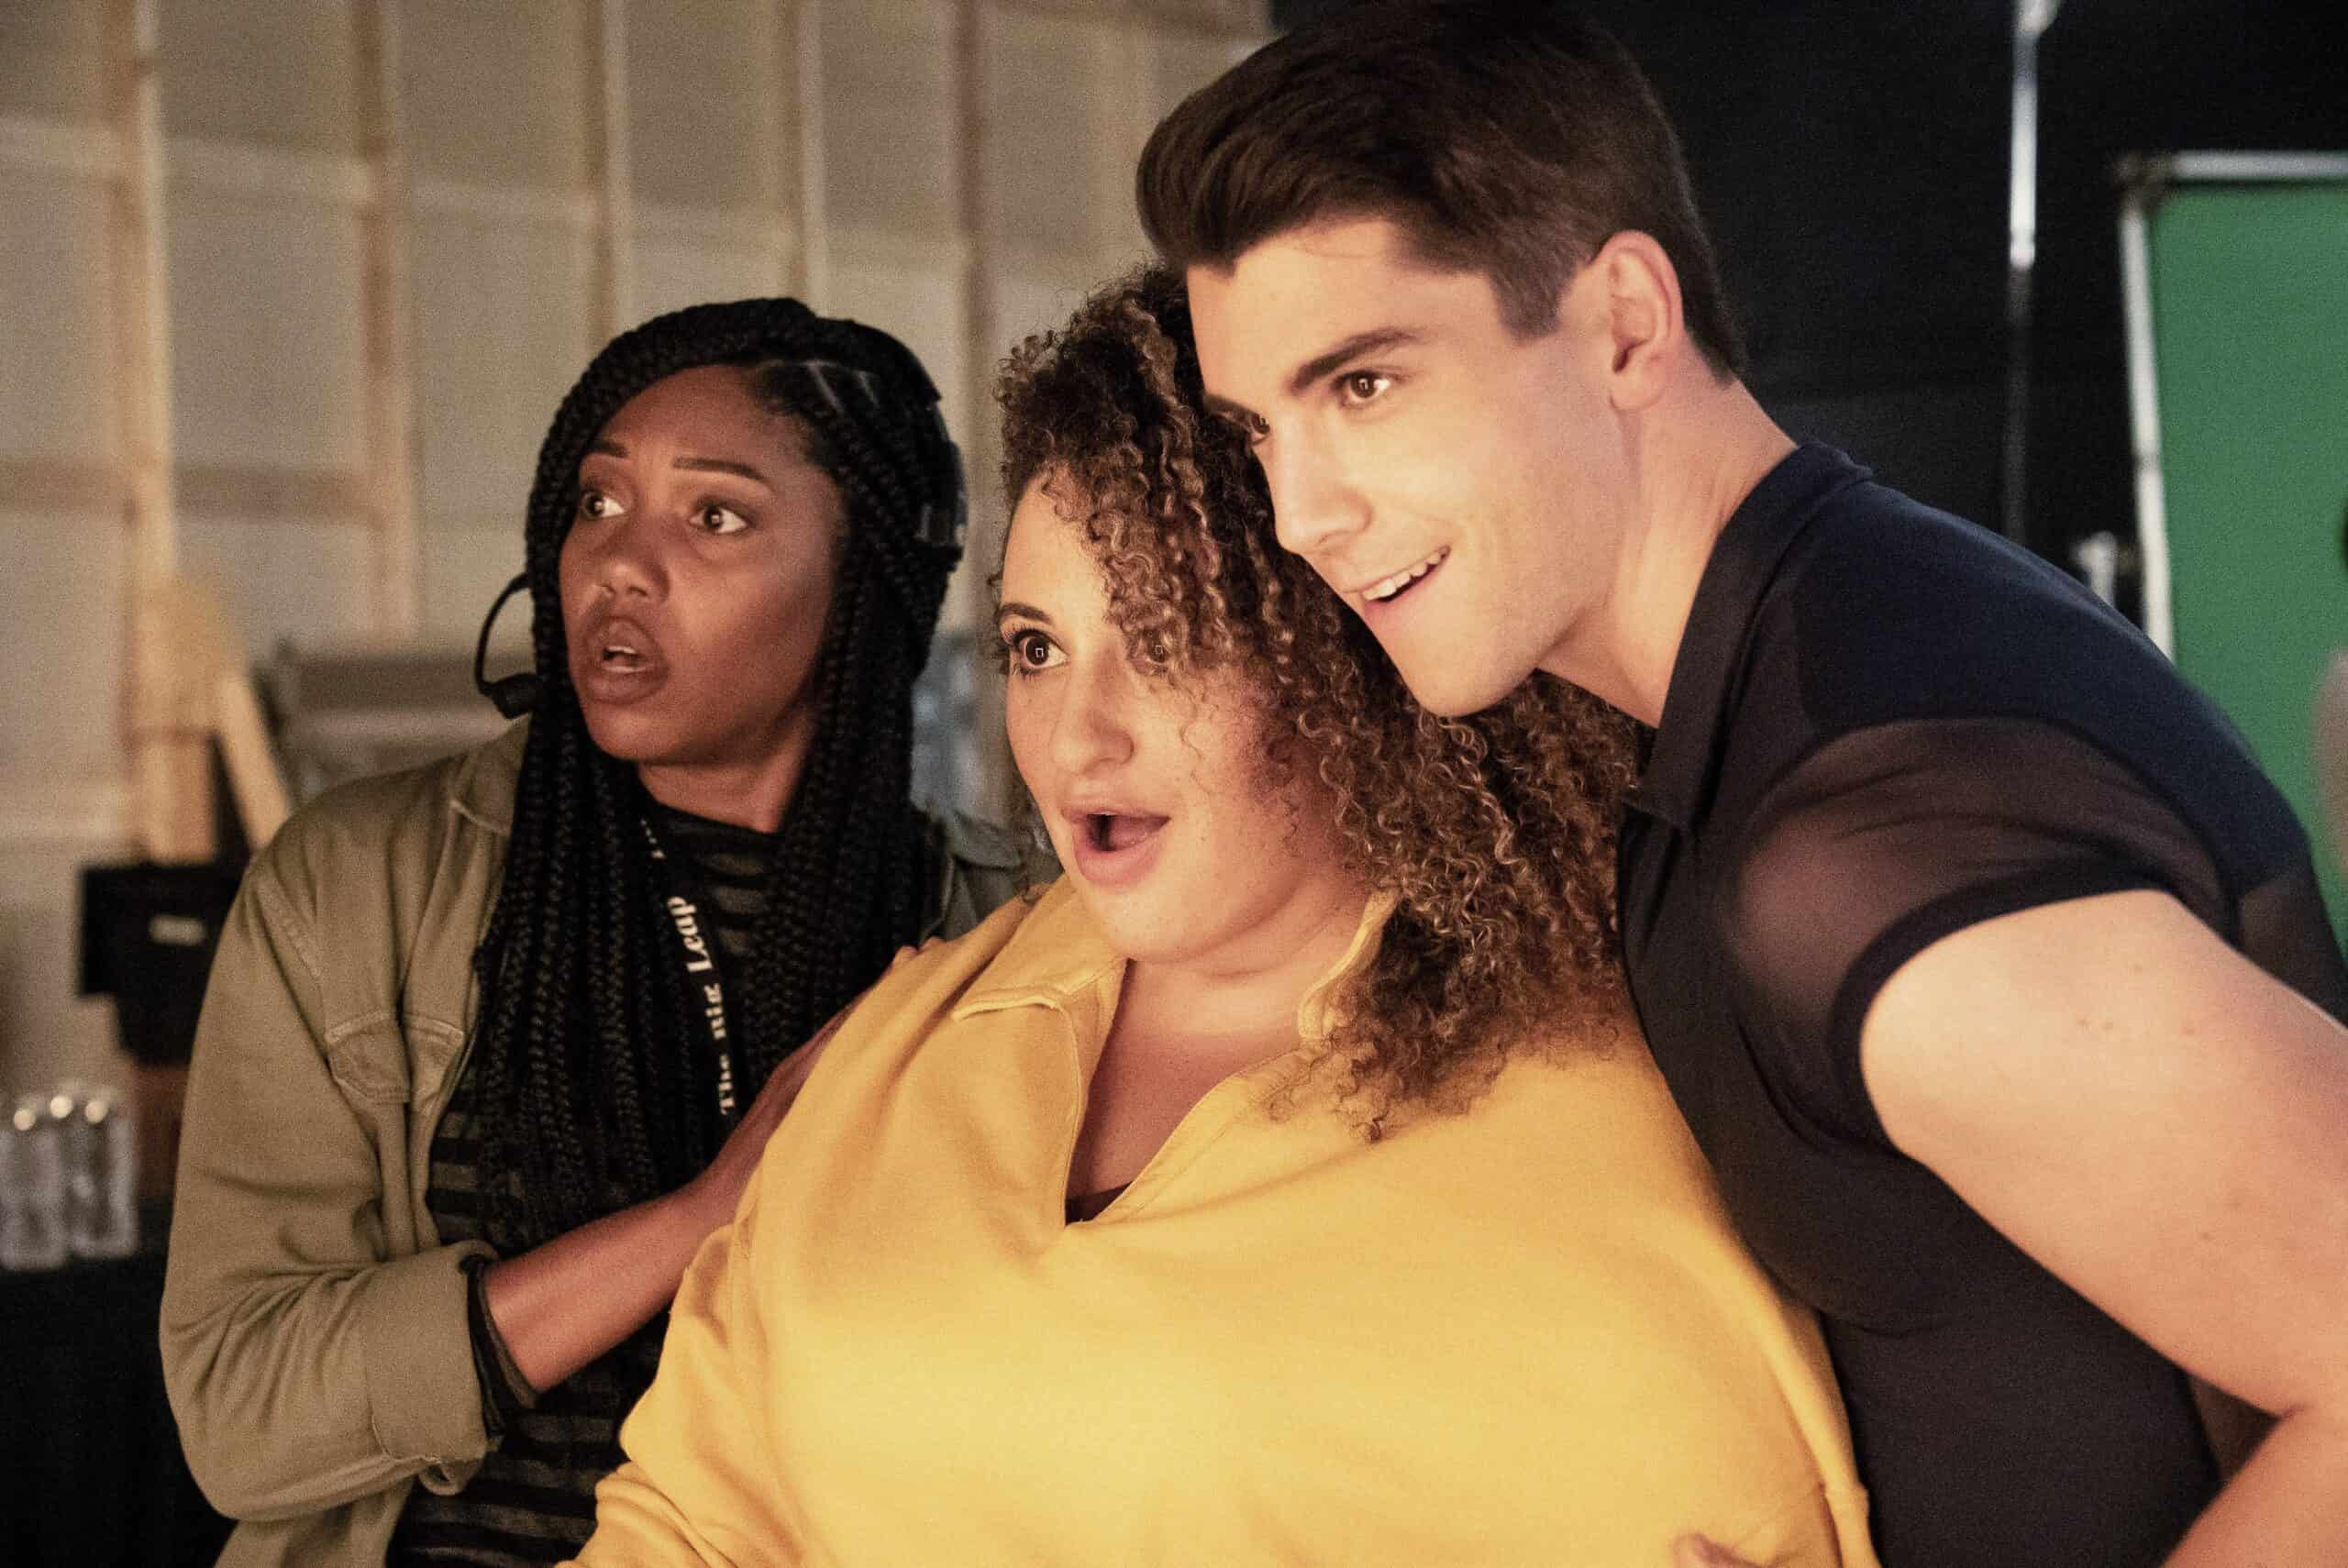 """THE BIG LEAP Season 1 Episode 4: L-R: Guest star McKenzie Chinn, Simone Recasner and guest star Adam Kaplan in the """"Nothing But Money Shots"""" episode of THE BIG LEAP airing Monday, Oct. 11 (9:00-10:00PM ET/PT) on FOX. © 2021 FOX Media LLC. CR: Jean Whiteside/FOX."""